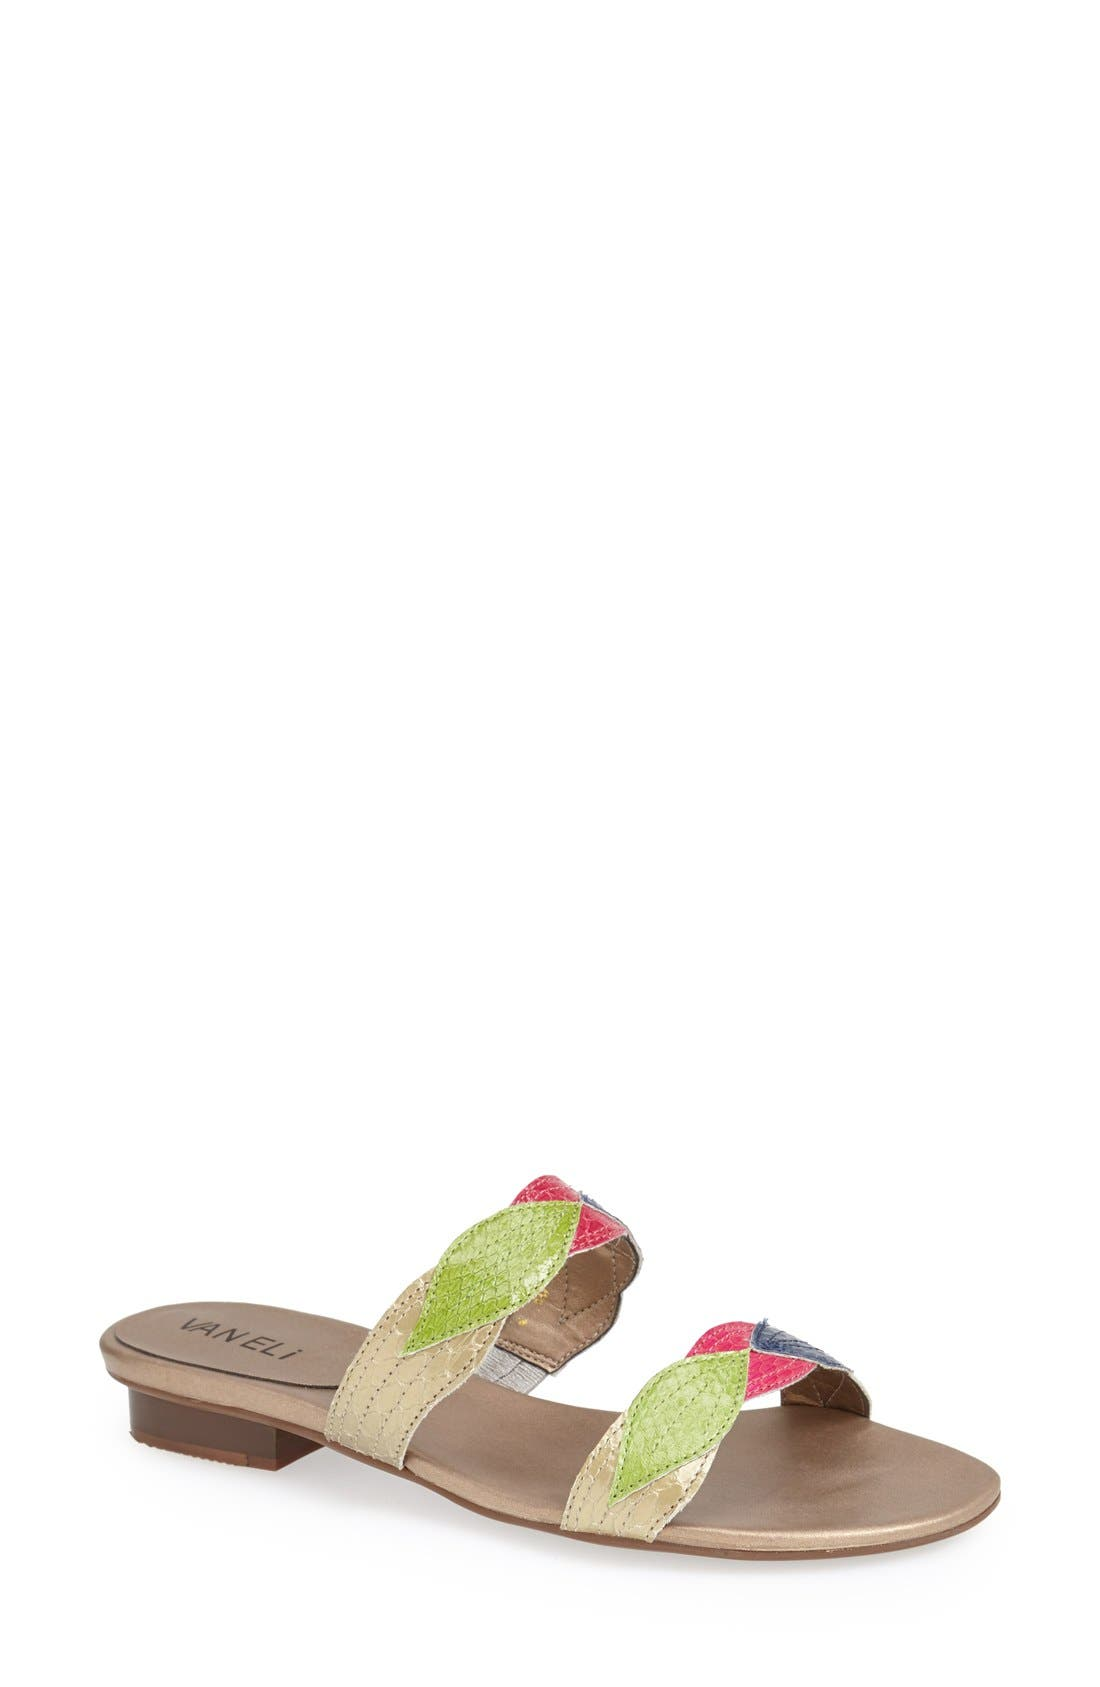 Alternate Image 1 Selected - VANELi 'Blim' Slide Sandal (Women) (Special Purchase)